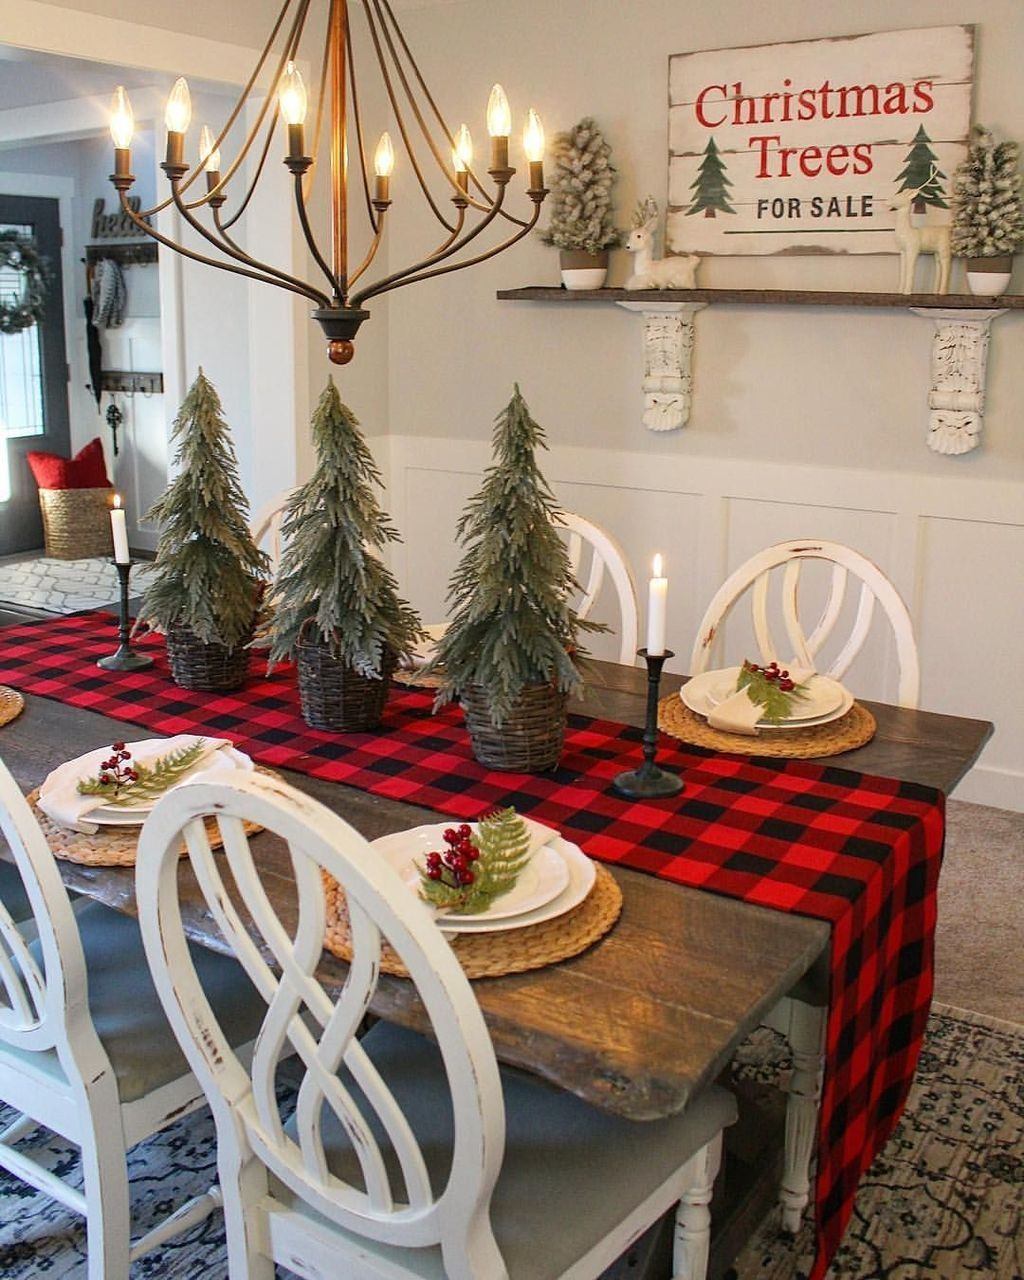 Awesome 99 Amazing Rustic Dining Room Table Decor Ideas More At Http 99homy Com 2018 02 06 99 Christmas Decorations Farmhouse Christmas Decor Holiday Decor